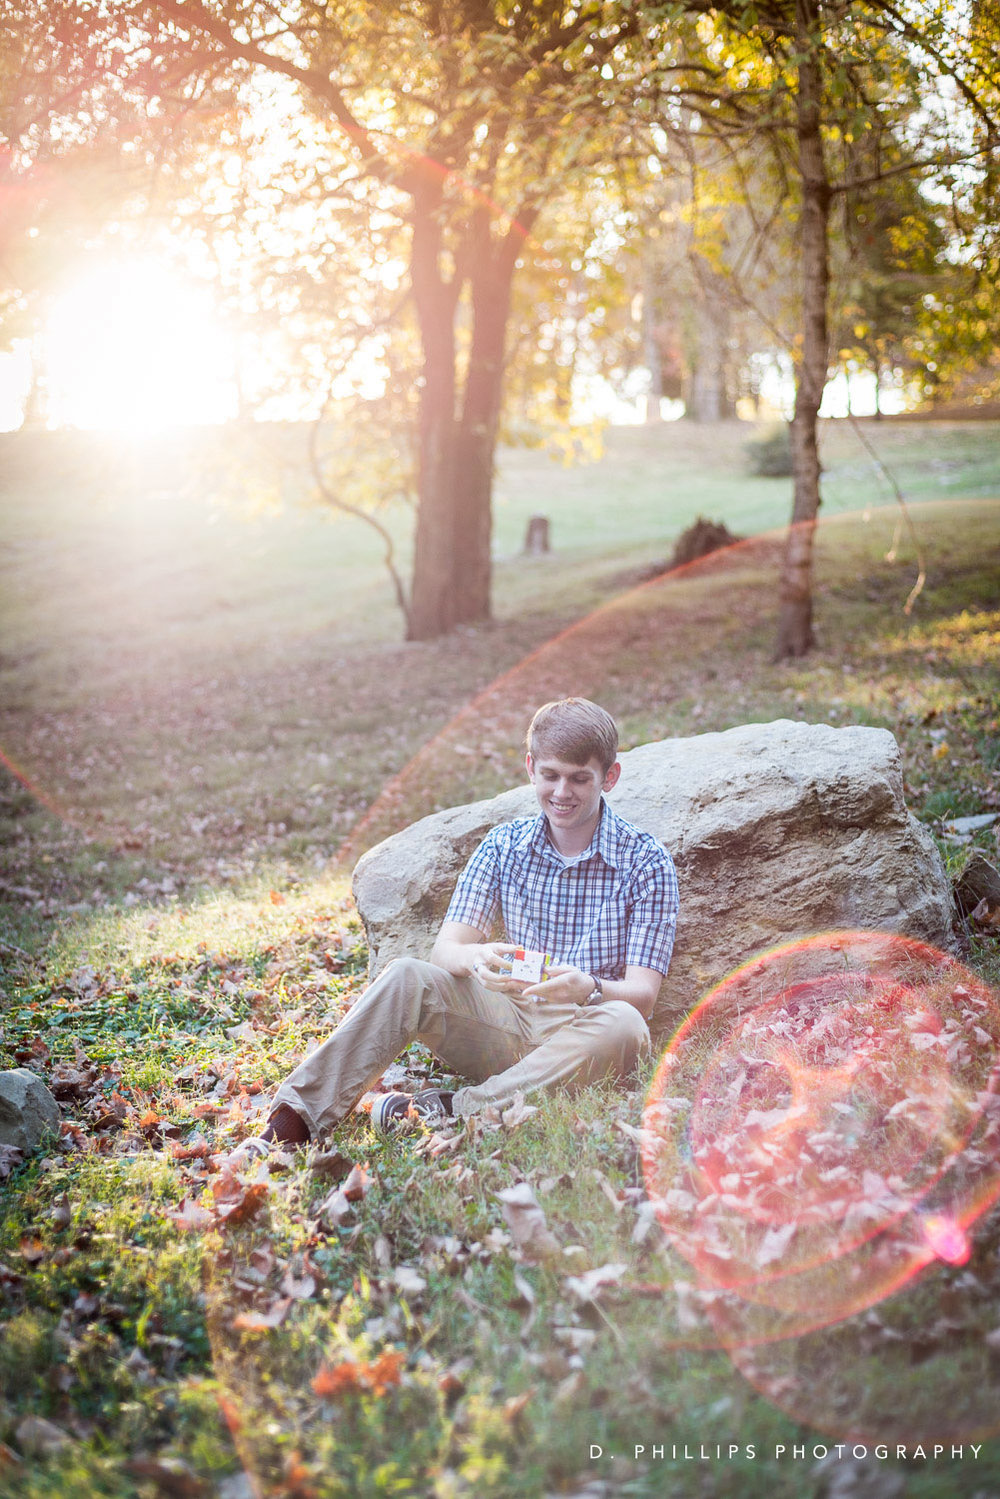 Outdoor natural light   senior photographer, Clarksville TN | www.dphillipsphotography.com   | Jason Carnahan